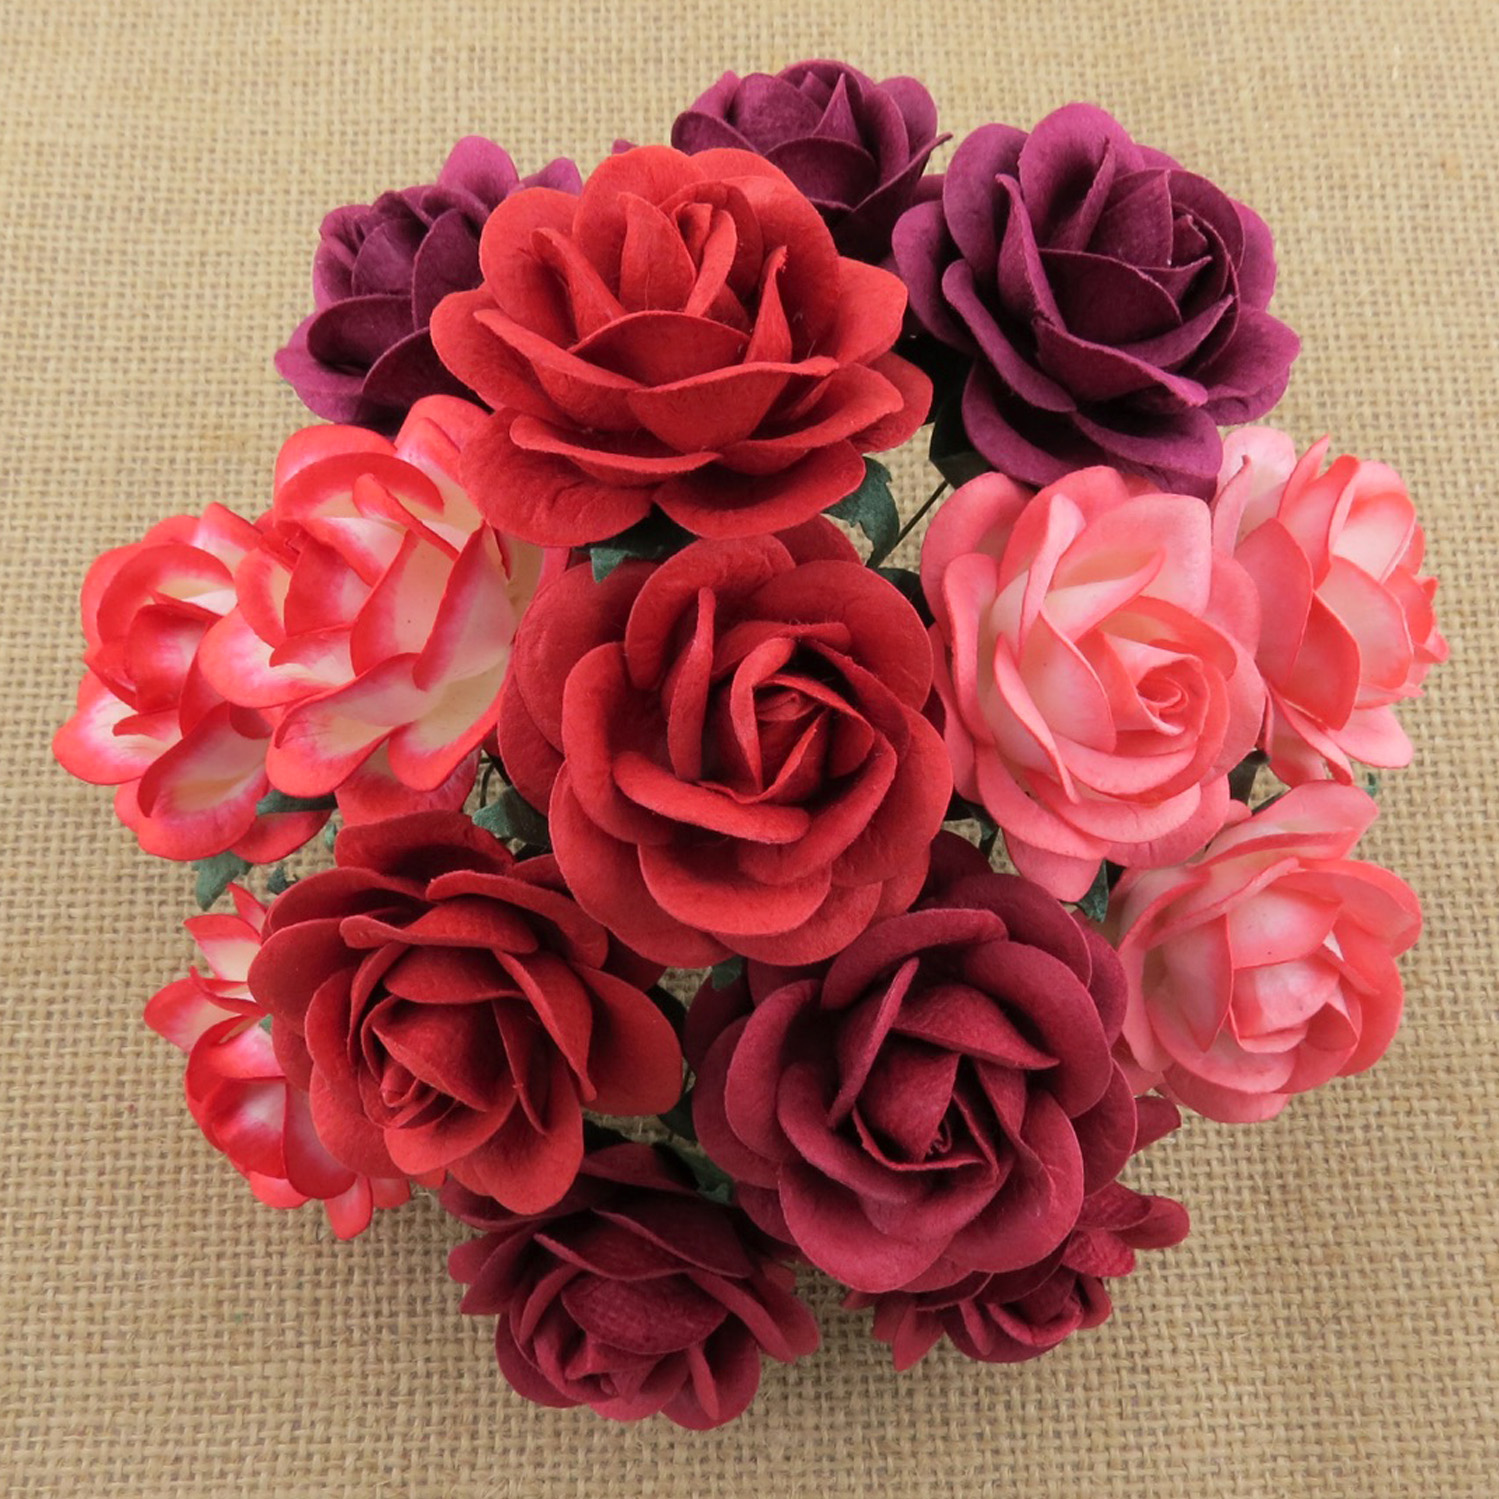 50 MIXED RED TONE MULBERRY PAPER TRELLIS ROSES - 5 COLOR